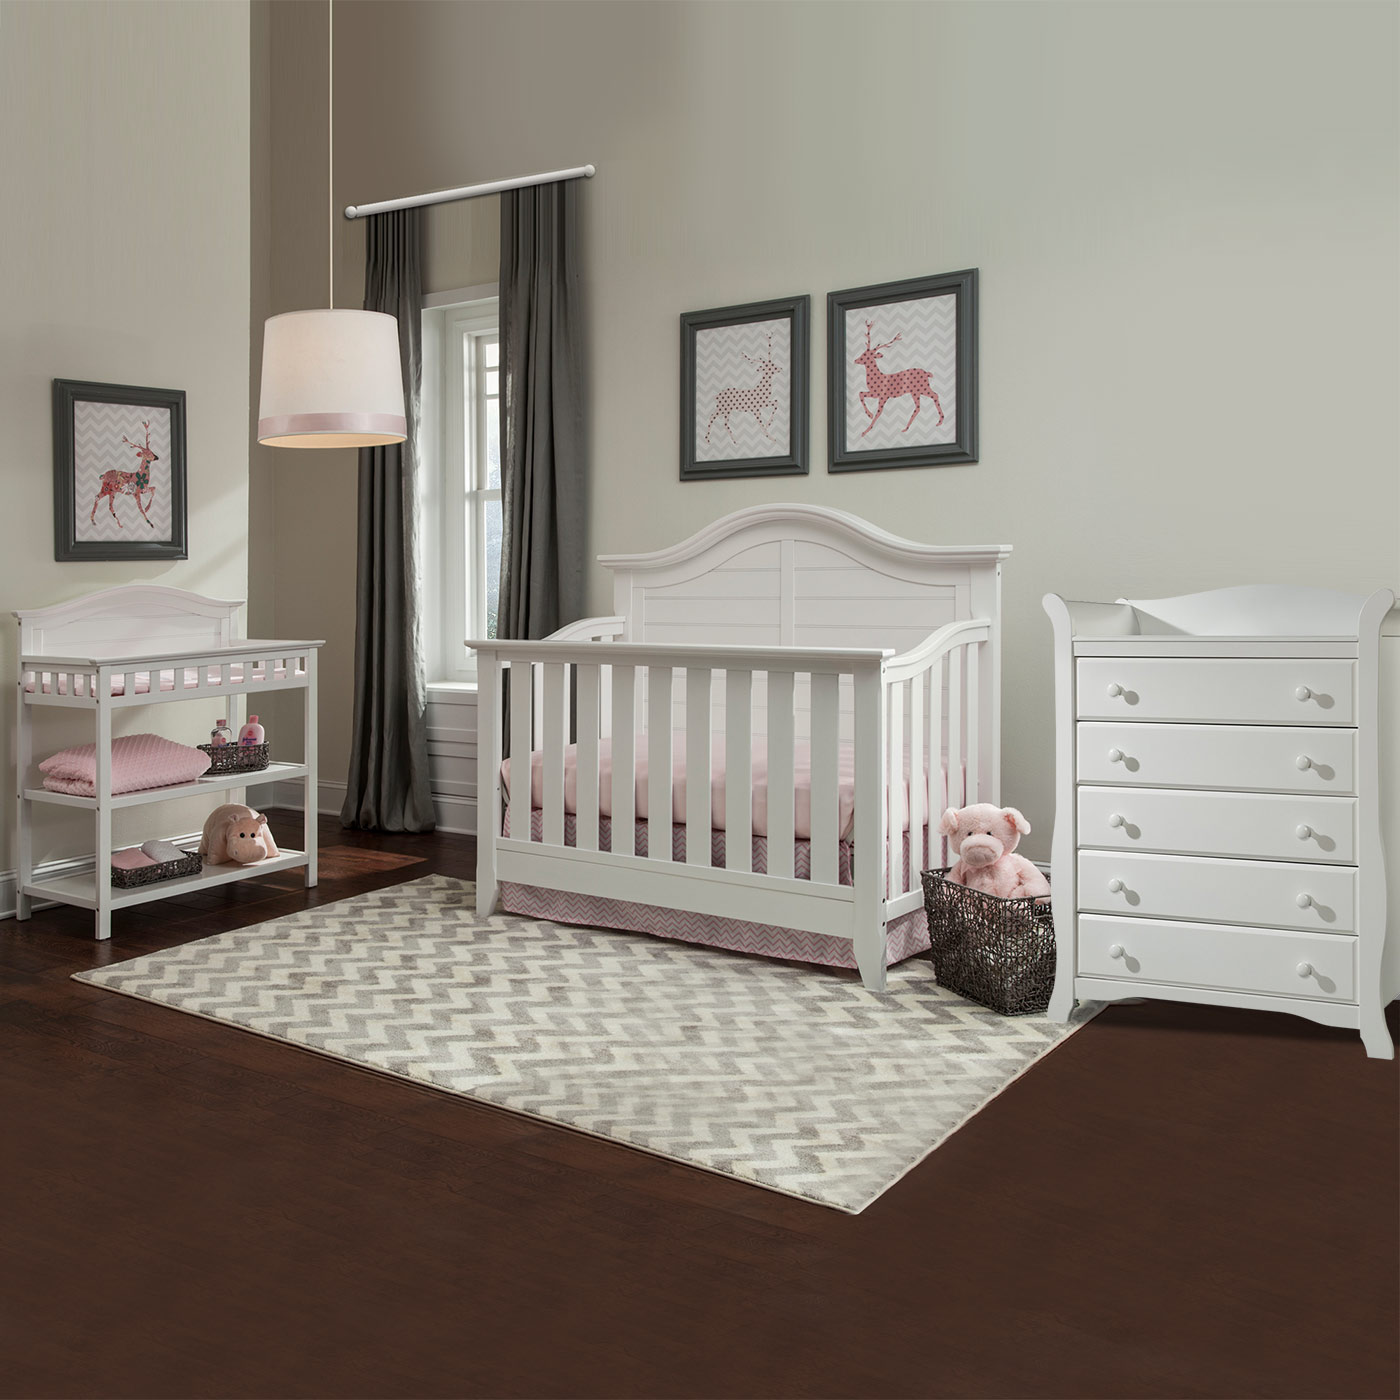 Thomasville 3 Piece Nursery Set Southern Dunes Lifestyle Crib Dressing Table And Avalon 5 Drawer Dresser In White Free